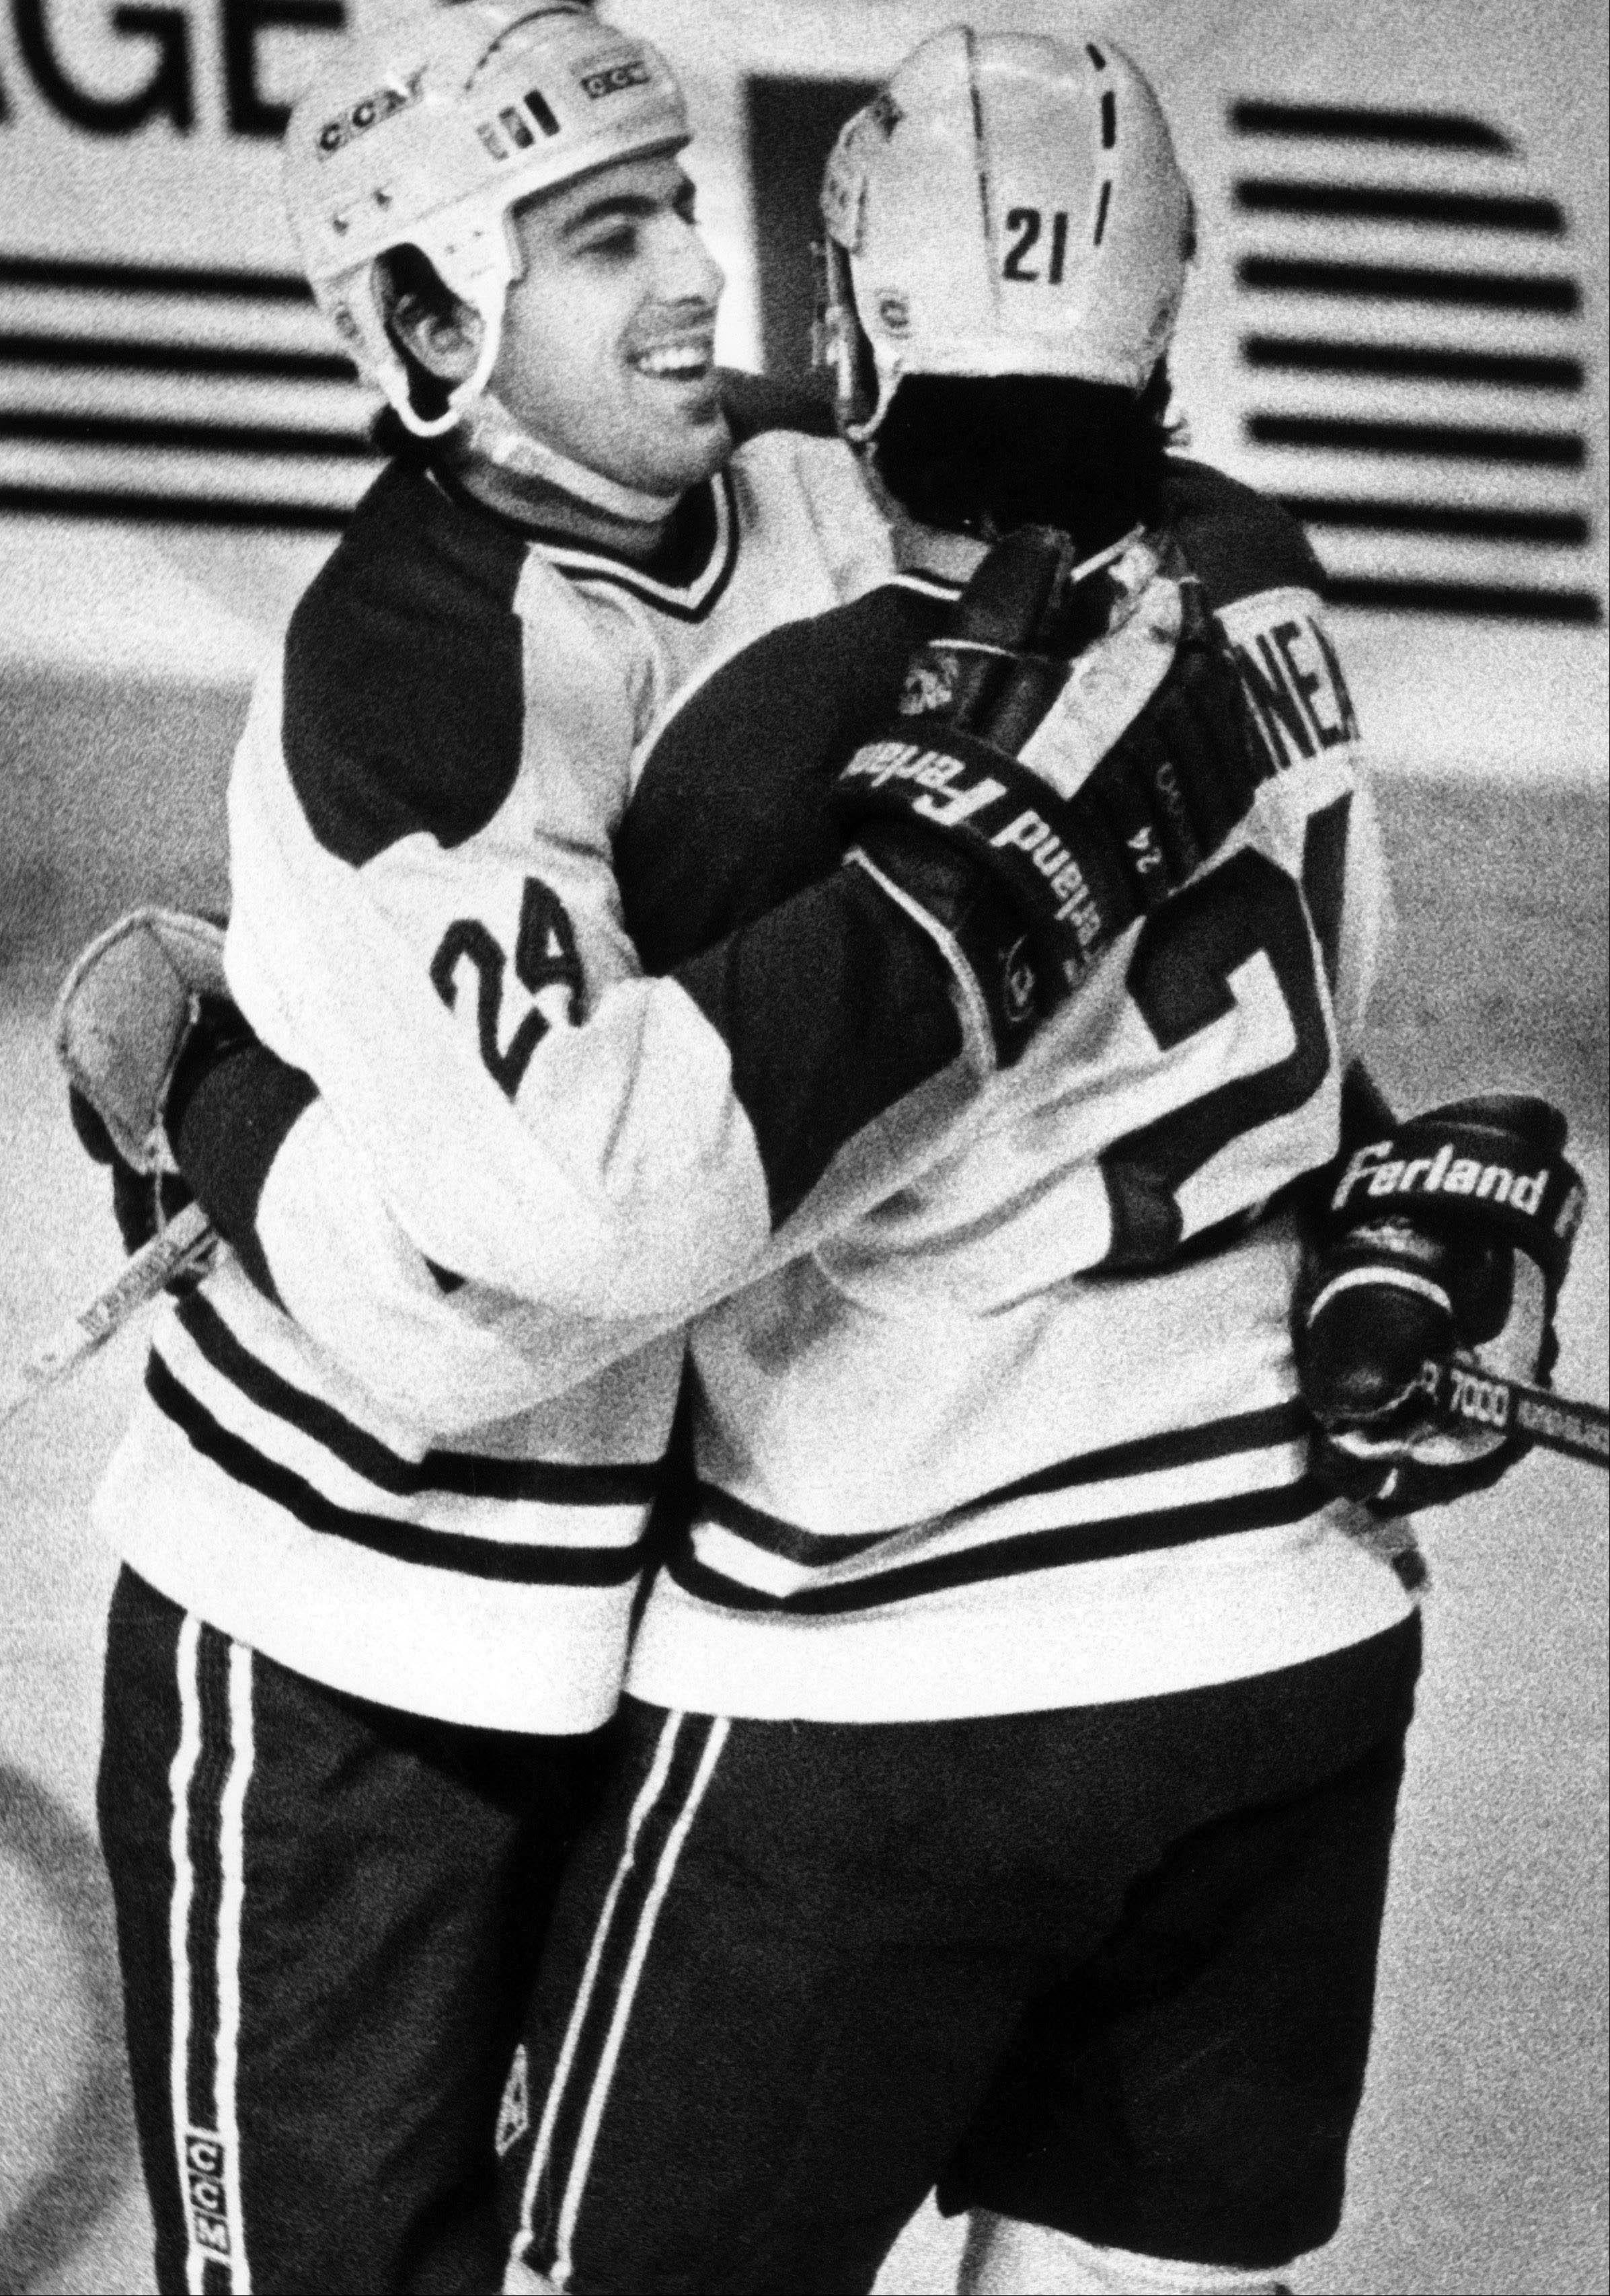 Montreal Canadiens' Chris Chelios, left, congratulates teammate Guy Carbonneau on his goal against the Edmonton Oilers during first period NHL action in Montreal in 1988.